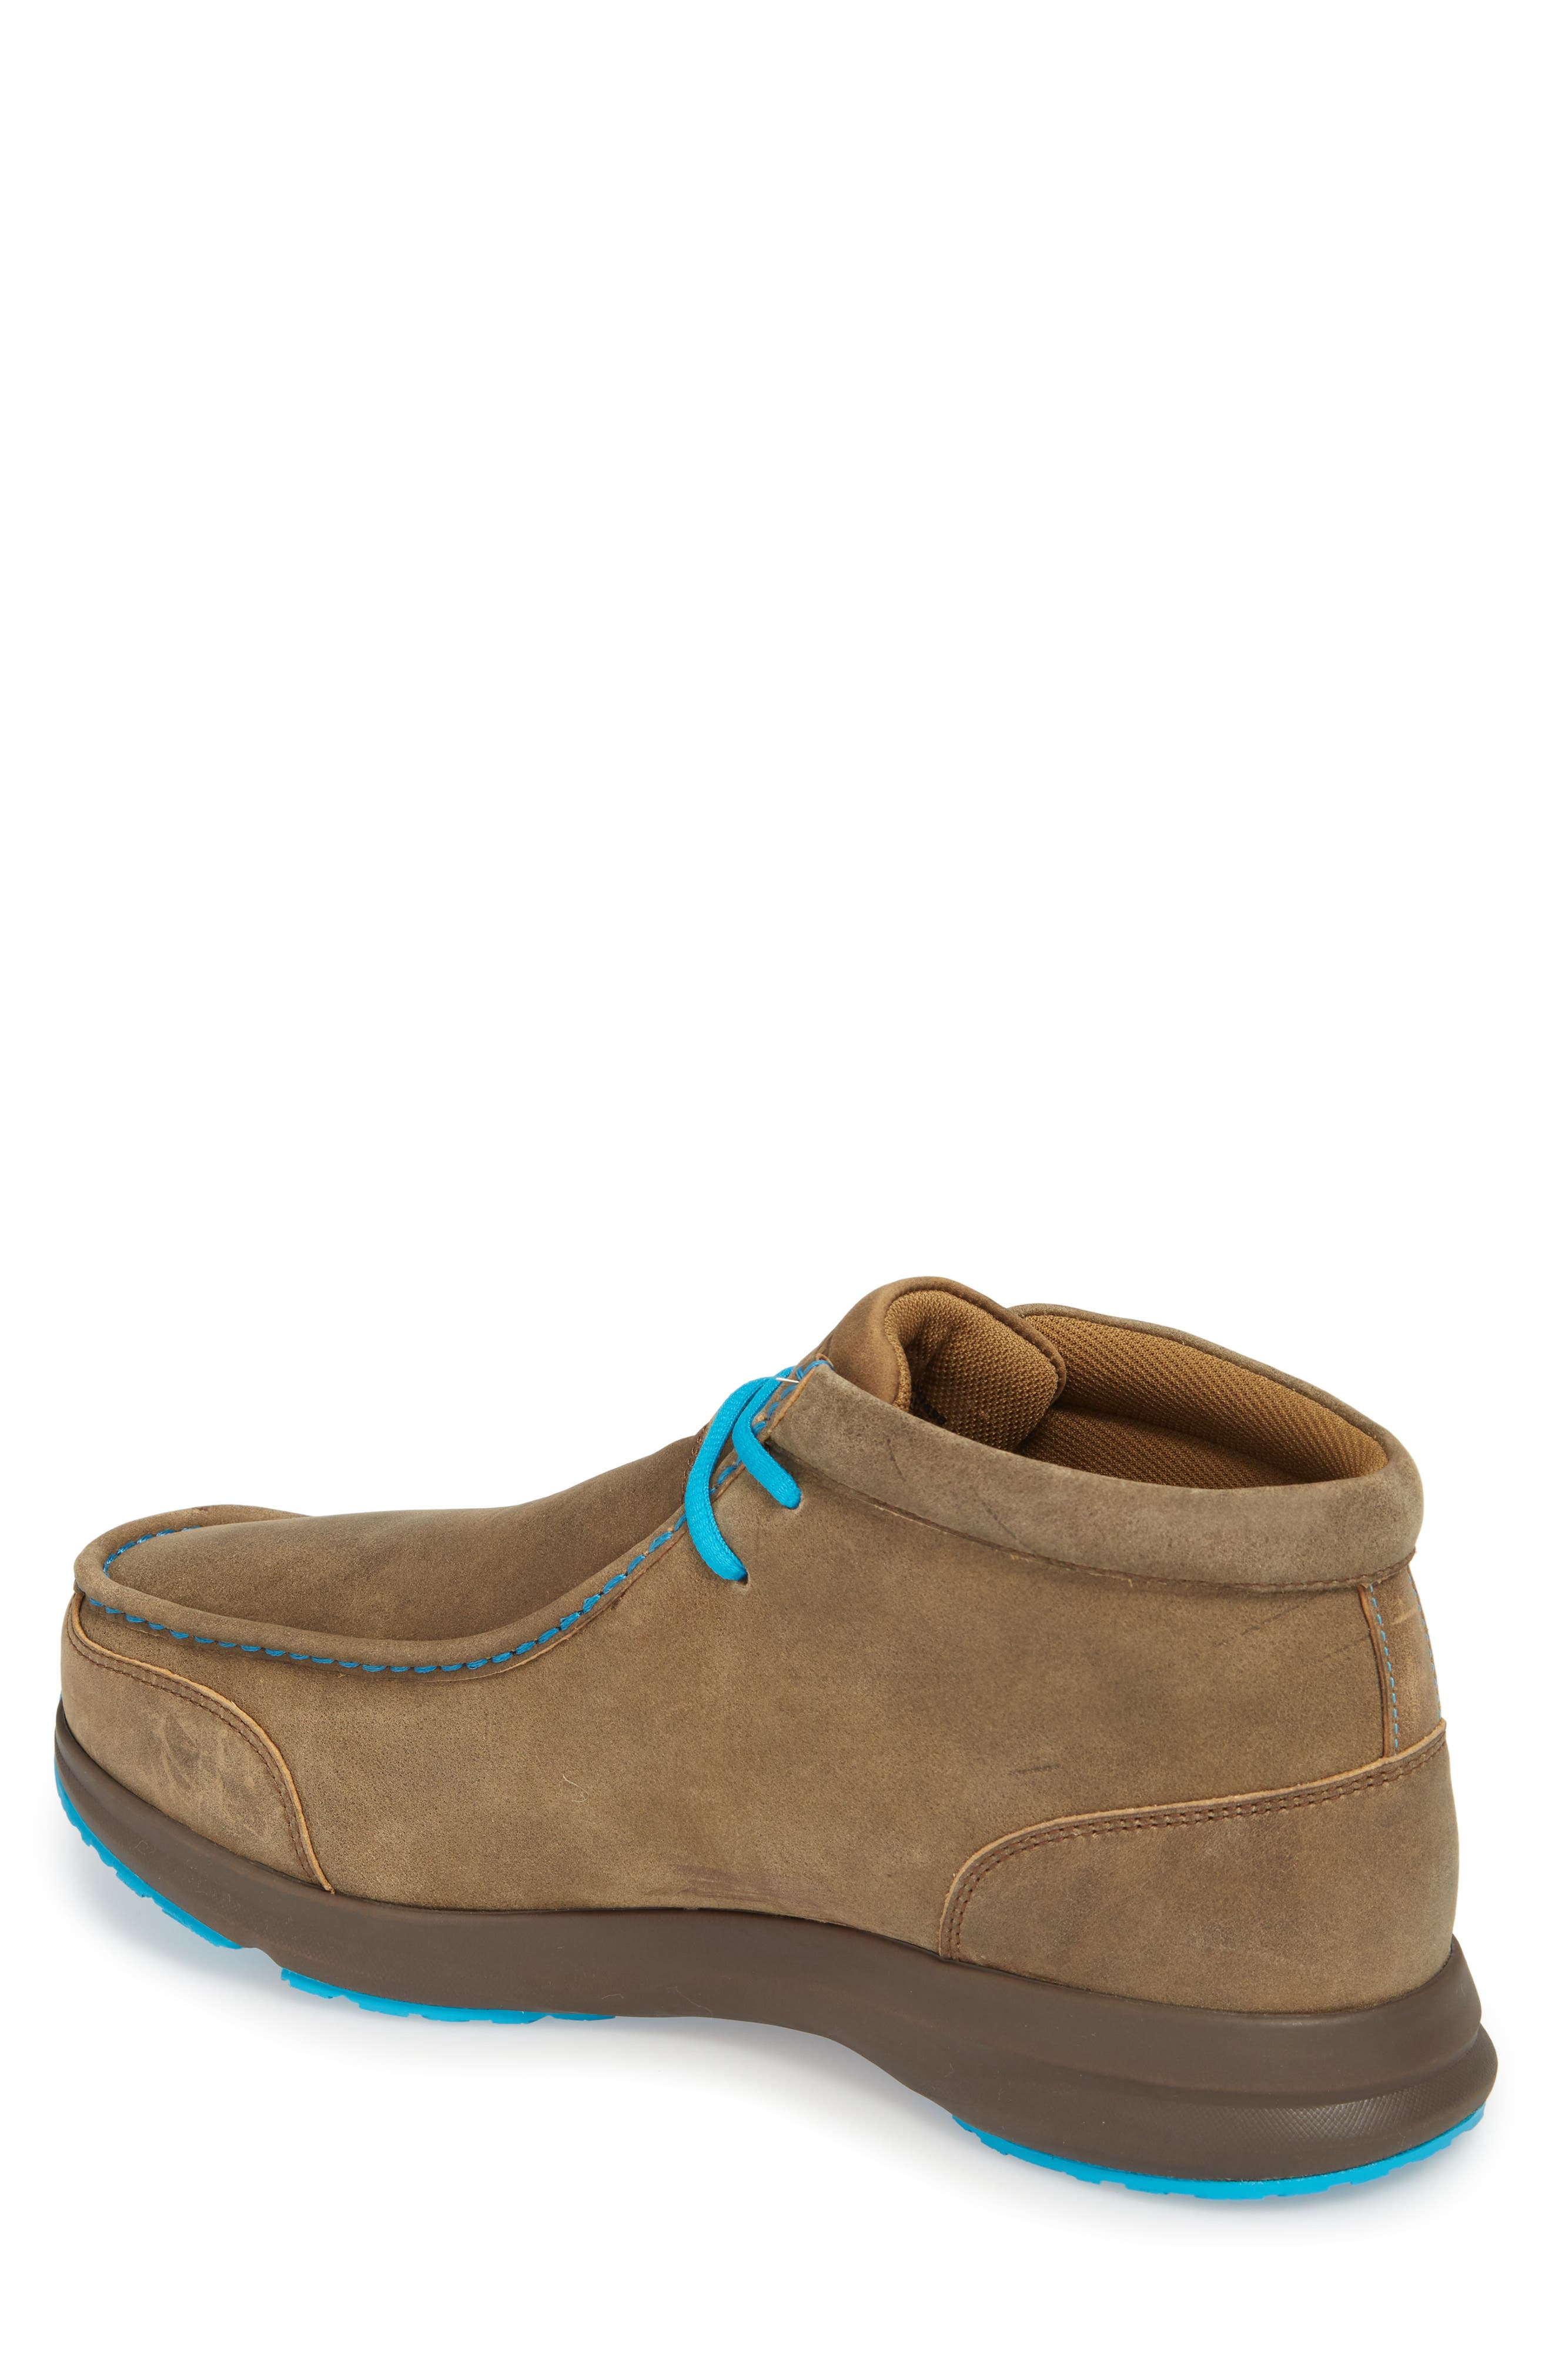 Spitfire Chukka Boot,                             Alternate thumbnail 2, color,                             BROWN BOMBER/ BLUE LEATHER